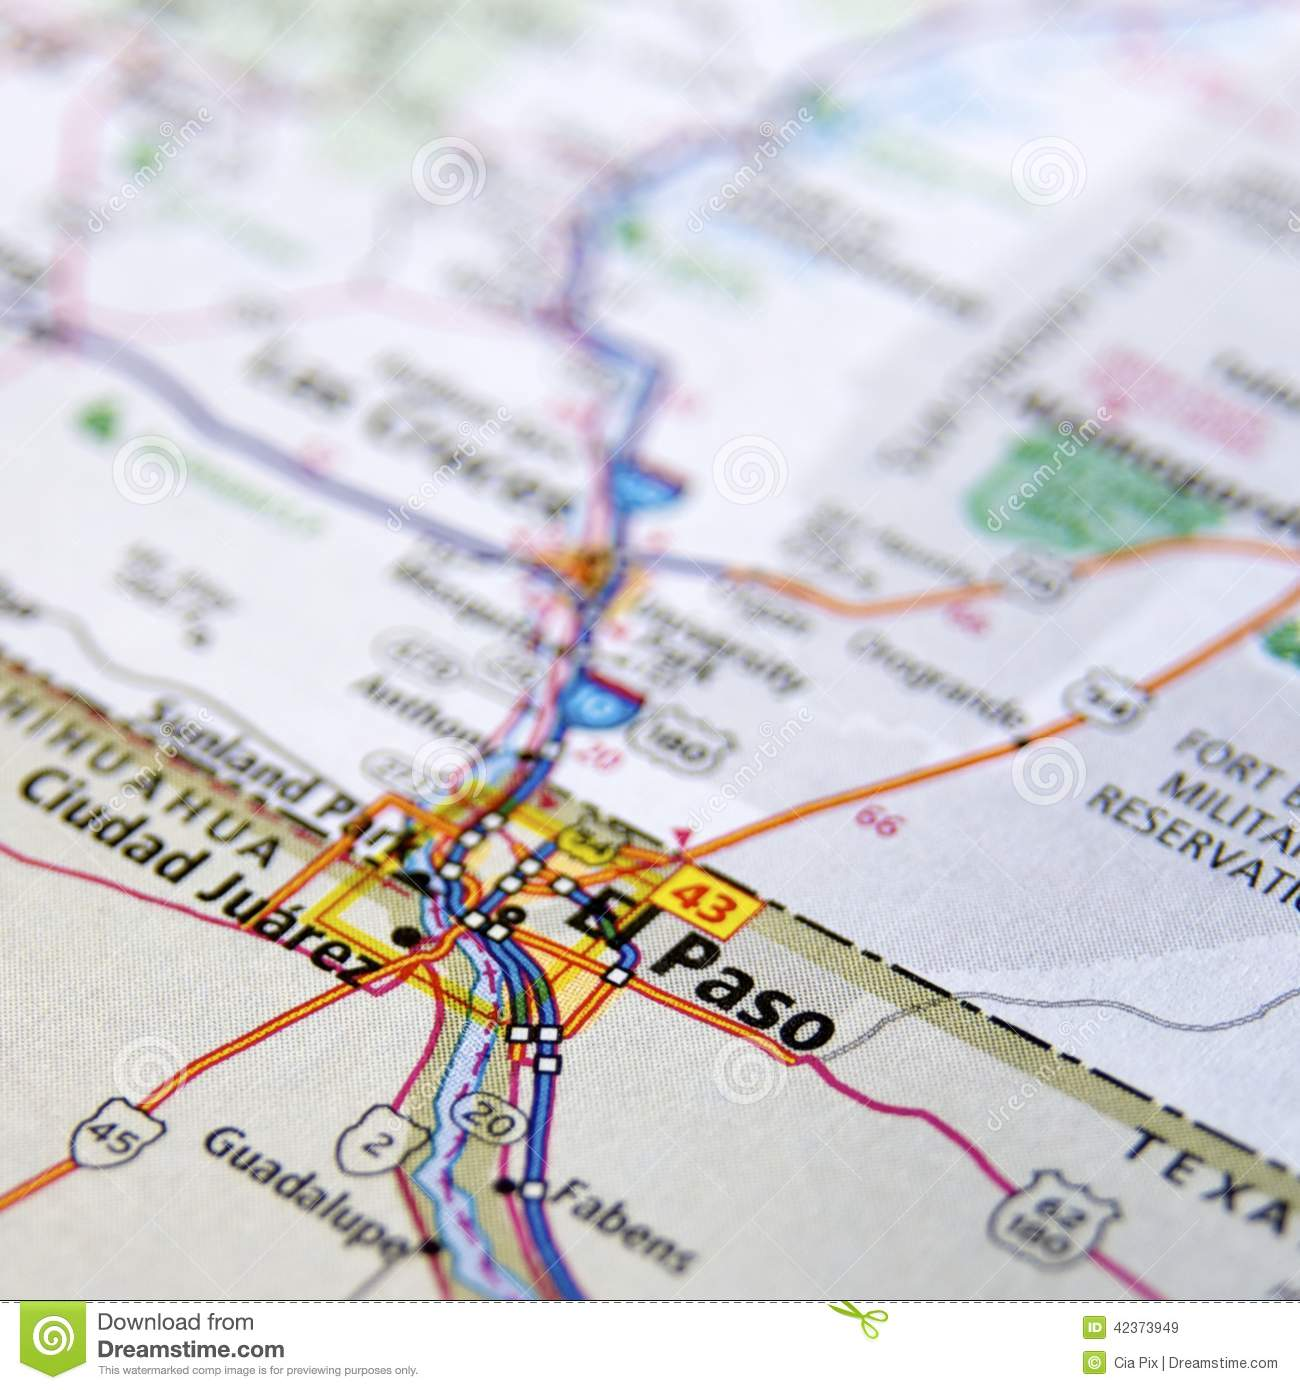 Map of El Paso in Texas stock image. Image of mapping - 42373949 Map Of El Paso S on map of nolan county, map of young county, map of ft bliss, map of culiacan, map of cancún, map of wilkes-barre, map of houston, map of colonial heights, map of tampa st petersburg, map of santa teresa, map of rio rico, map of corbin, map of liberal, map of austin, map of ft stockton, map of indiana in, map of eastern id, map of beebe, map of hamtramck, map arizona,